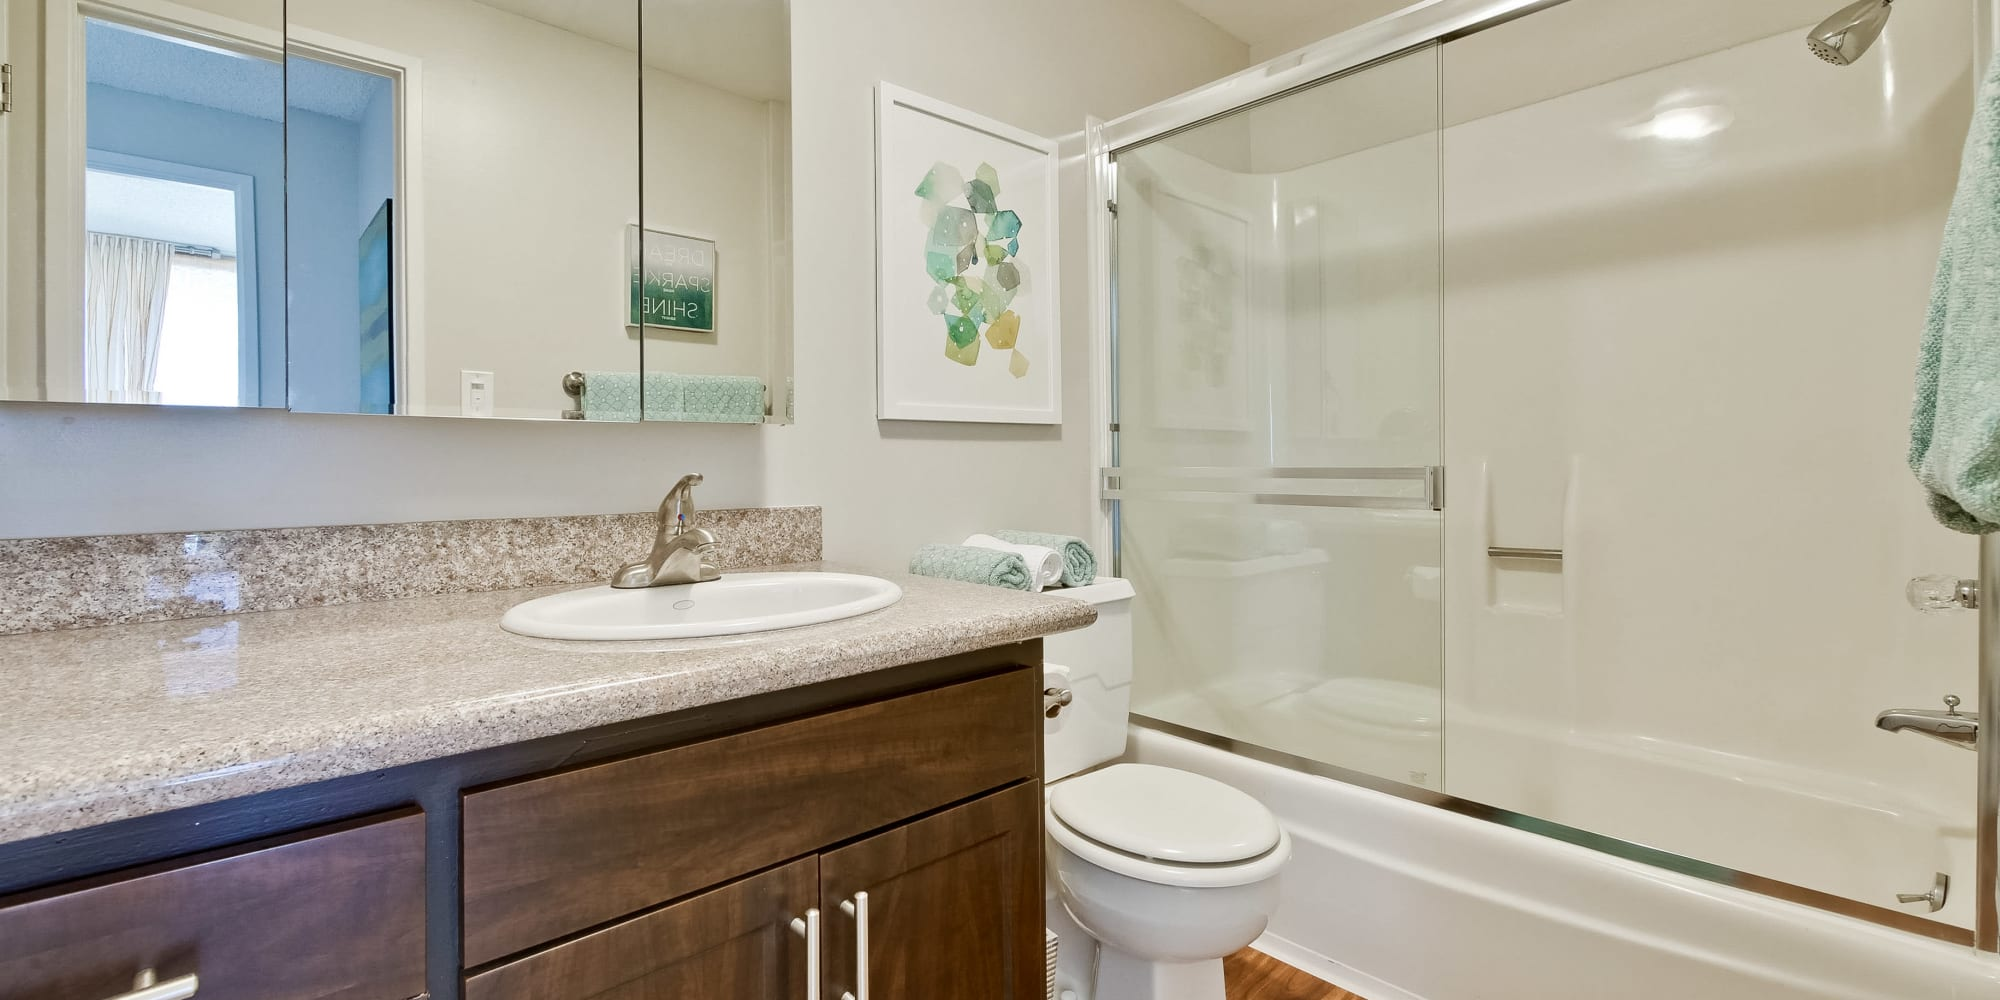 Luxury bathrooms with shower and bathtub at The Marc, Palo Alto in Palo Alto, California